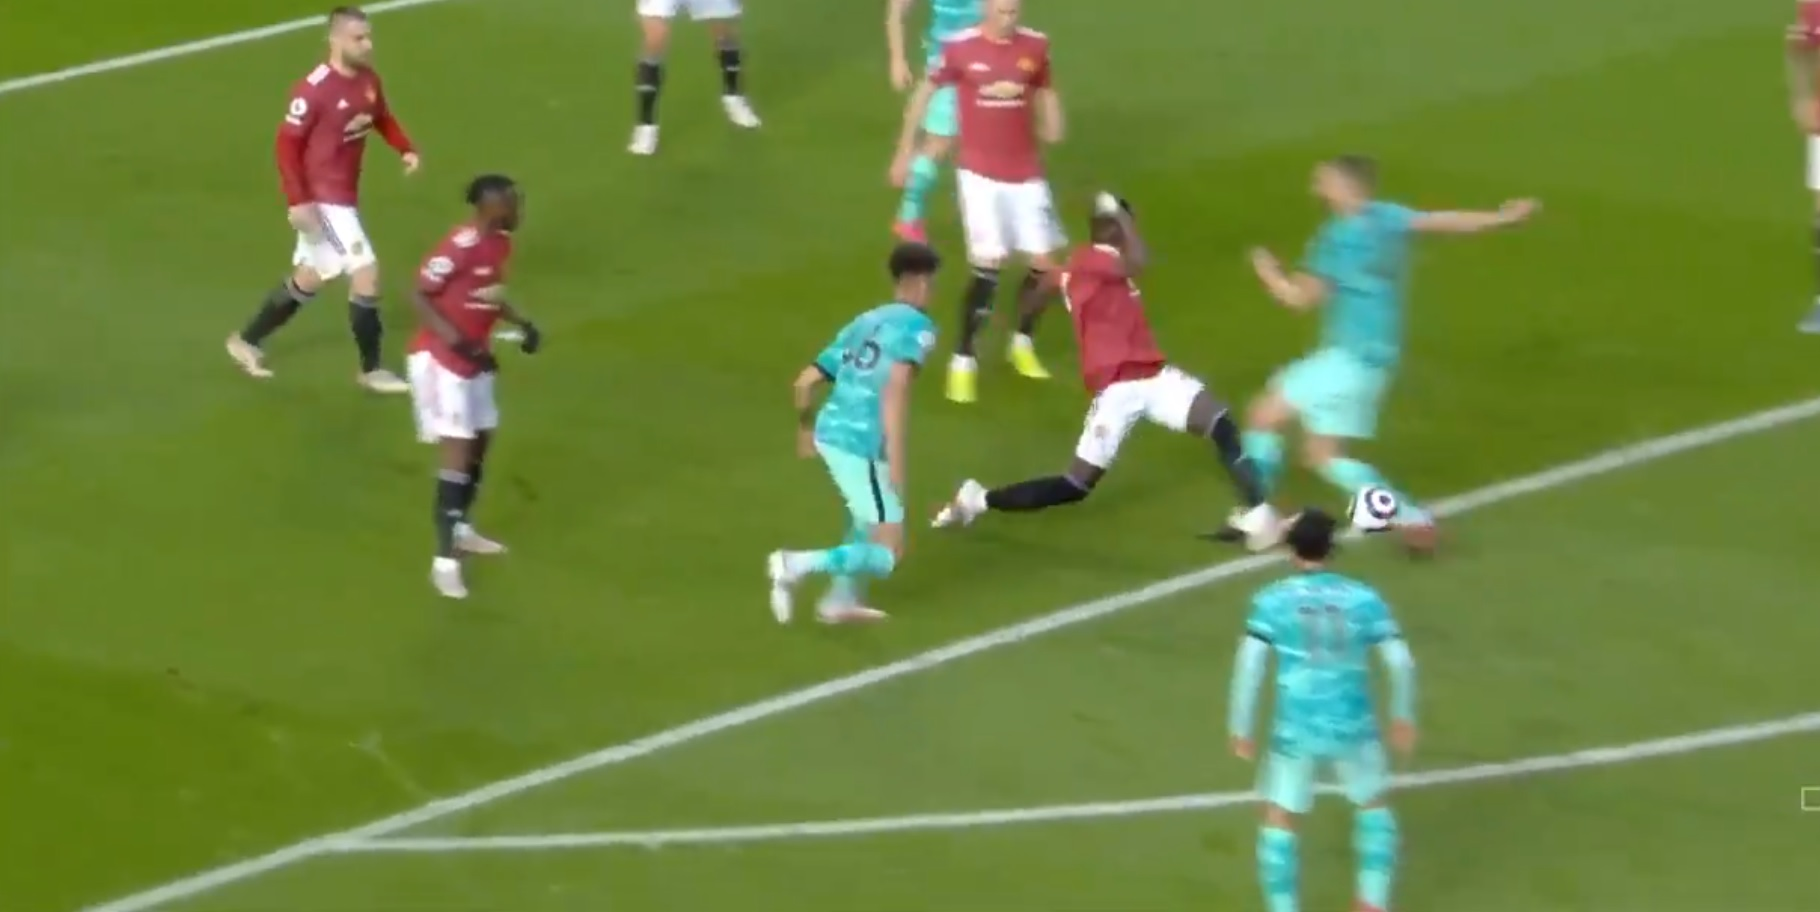 (Video) VAR nearly messes up another game for Liverpool after contentious Bailly penalty call